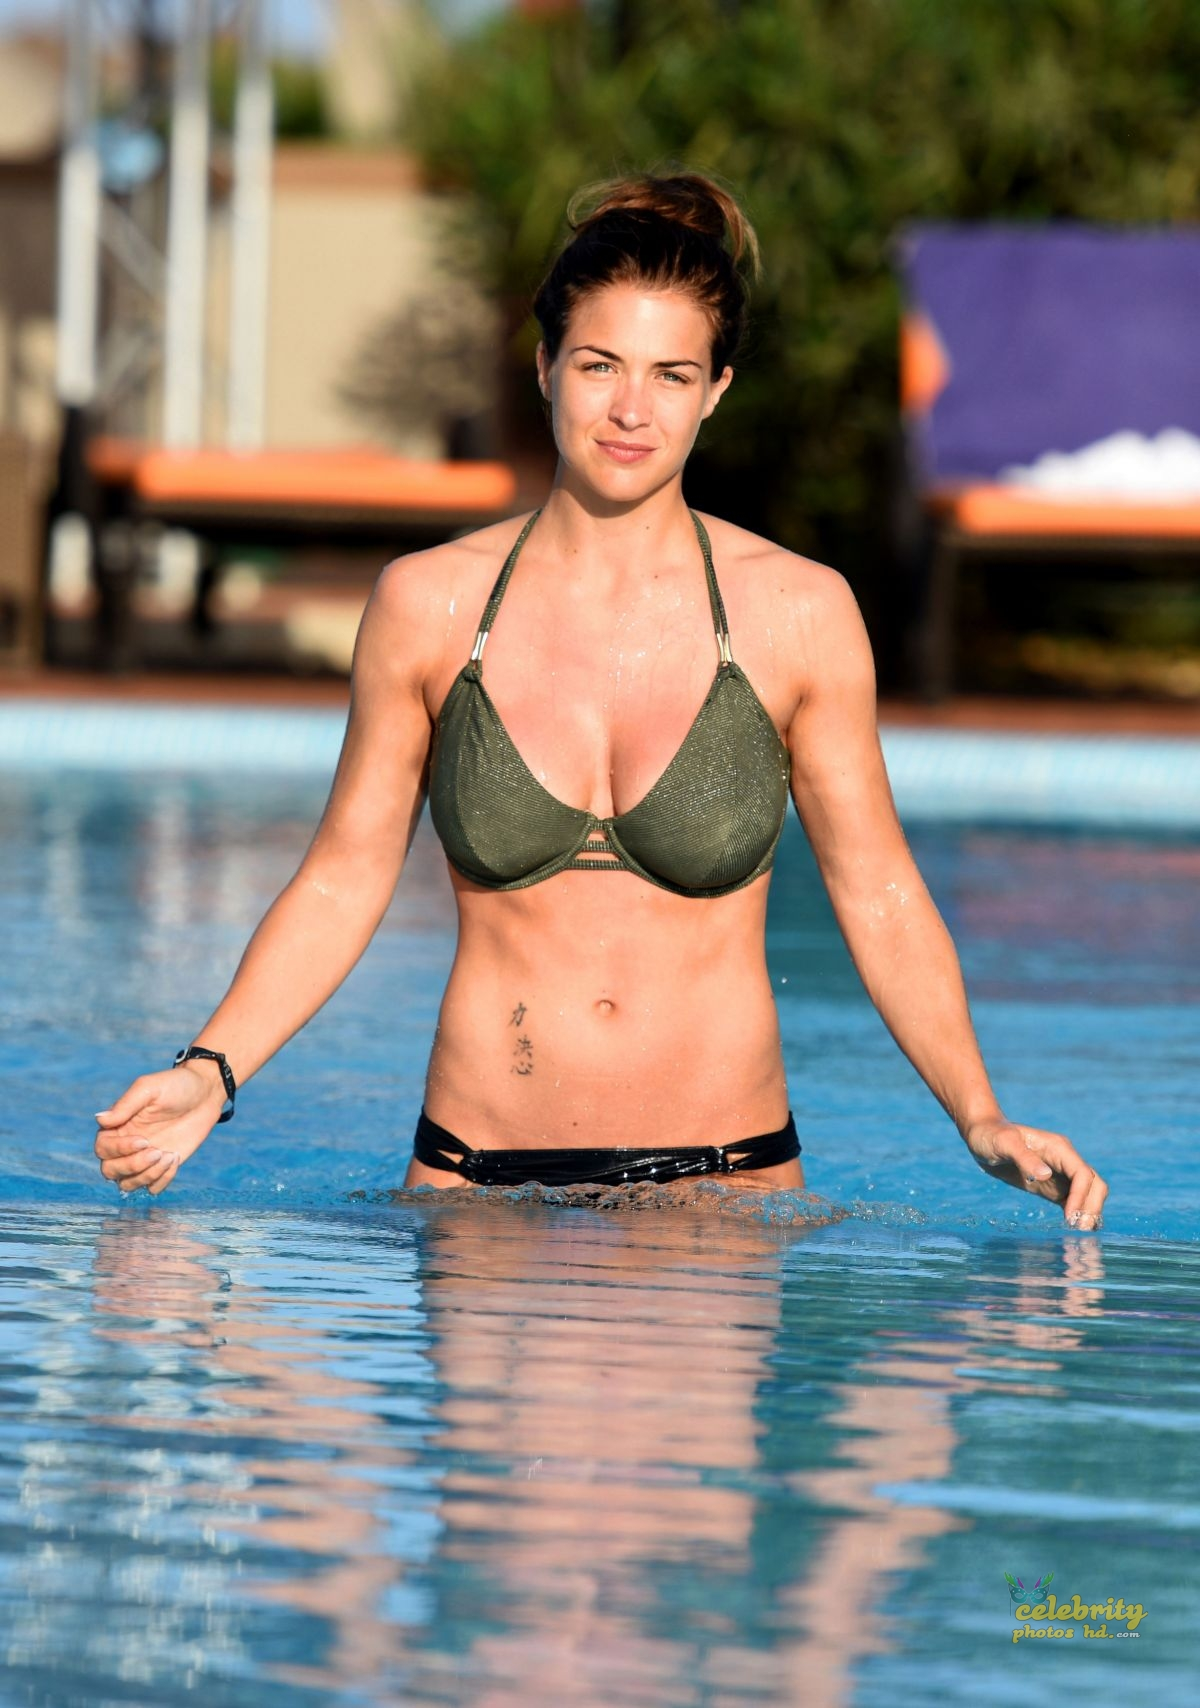 Hollywood Actress Gemma Atkinson Bikini Photo (4)